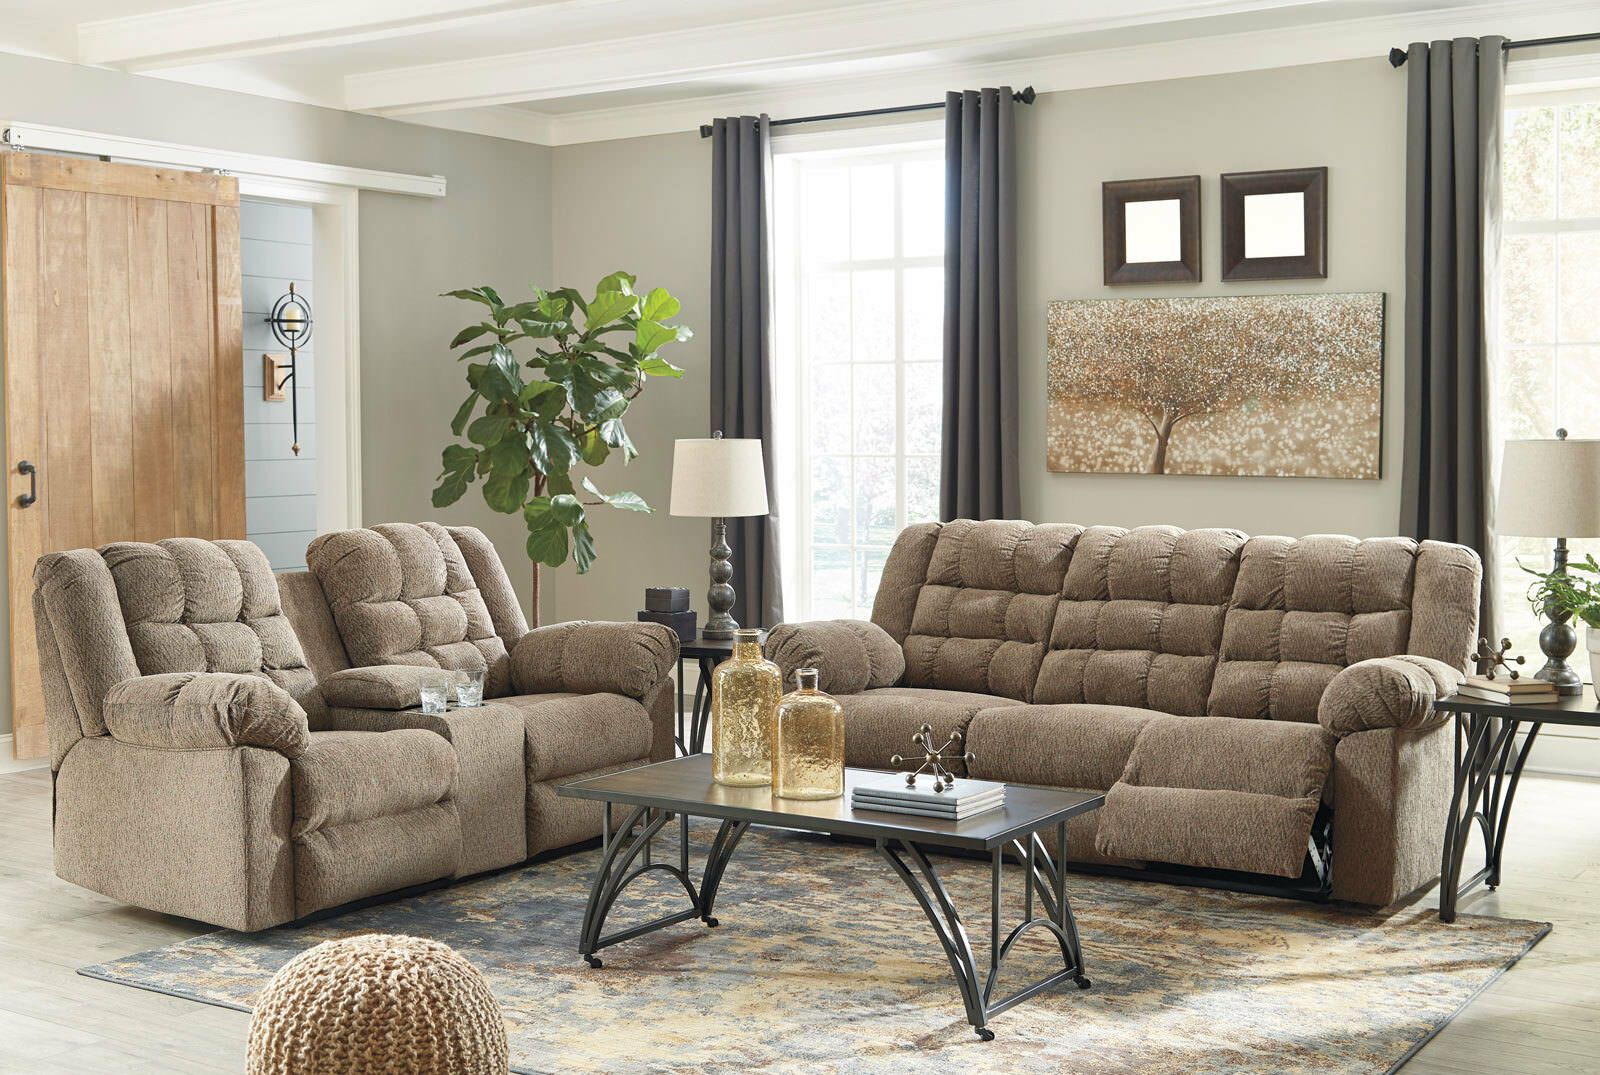 New Miller Living Room Furniture Brown Fabric Reclining Sofa Couch Loveseat Set Sofas Living Room Ideas O Couch And Loveseat Set Living Room Sofa Furniture